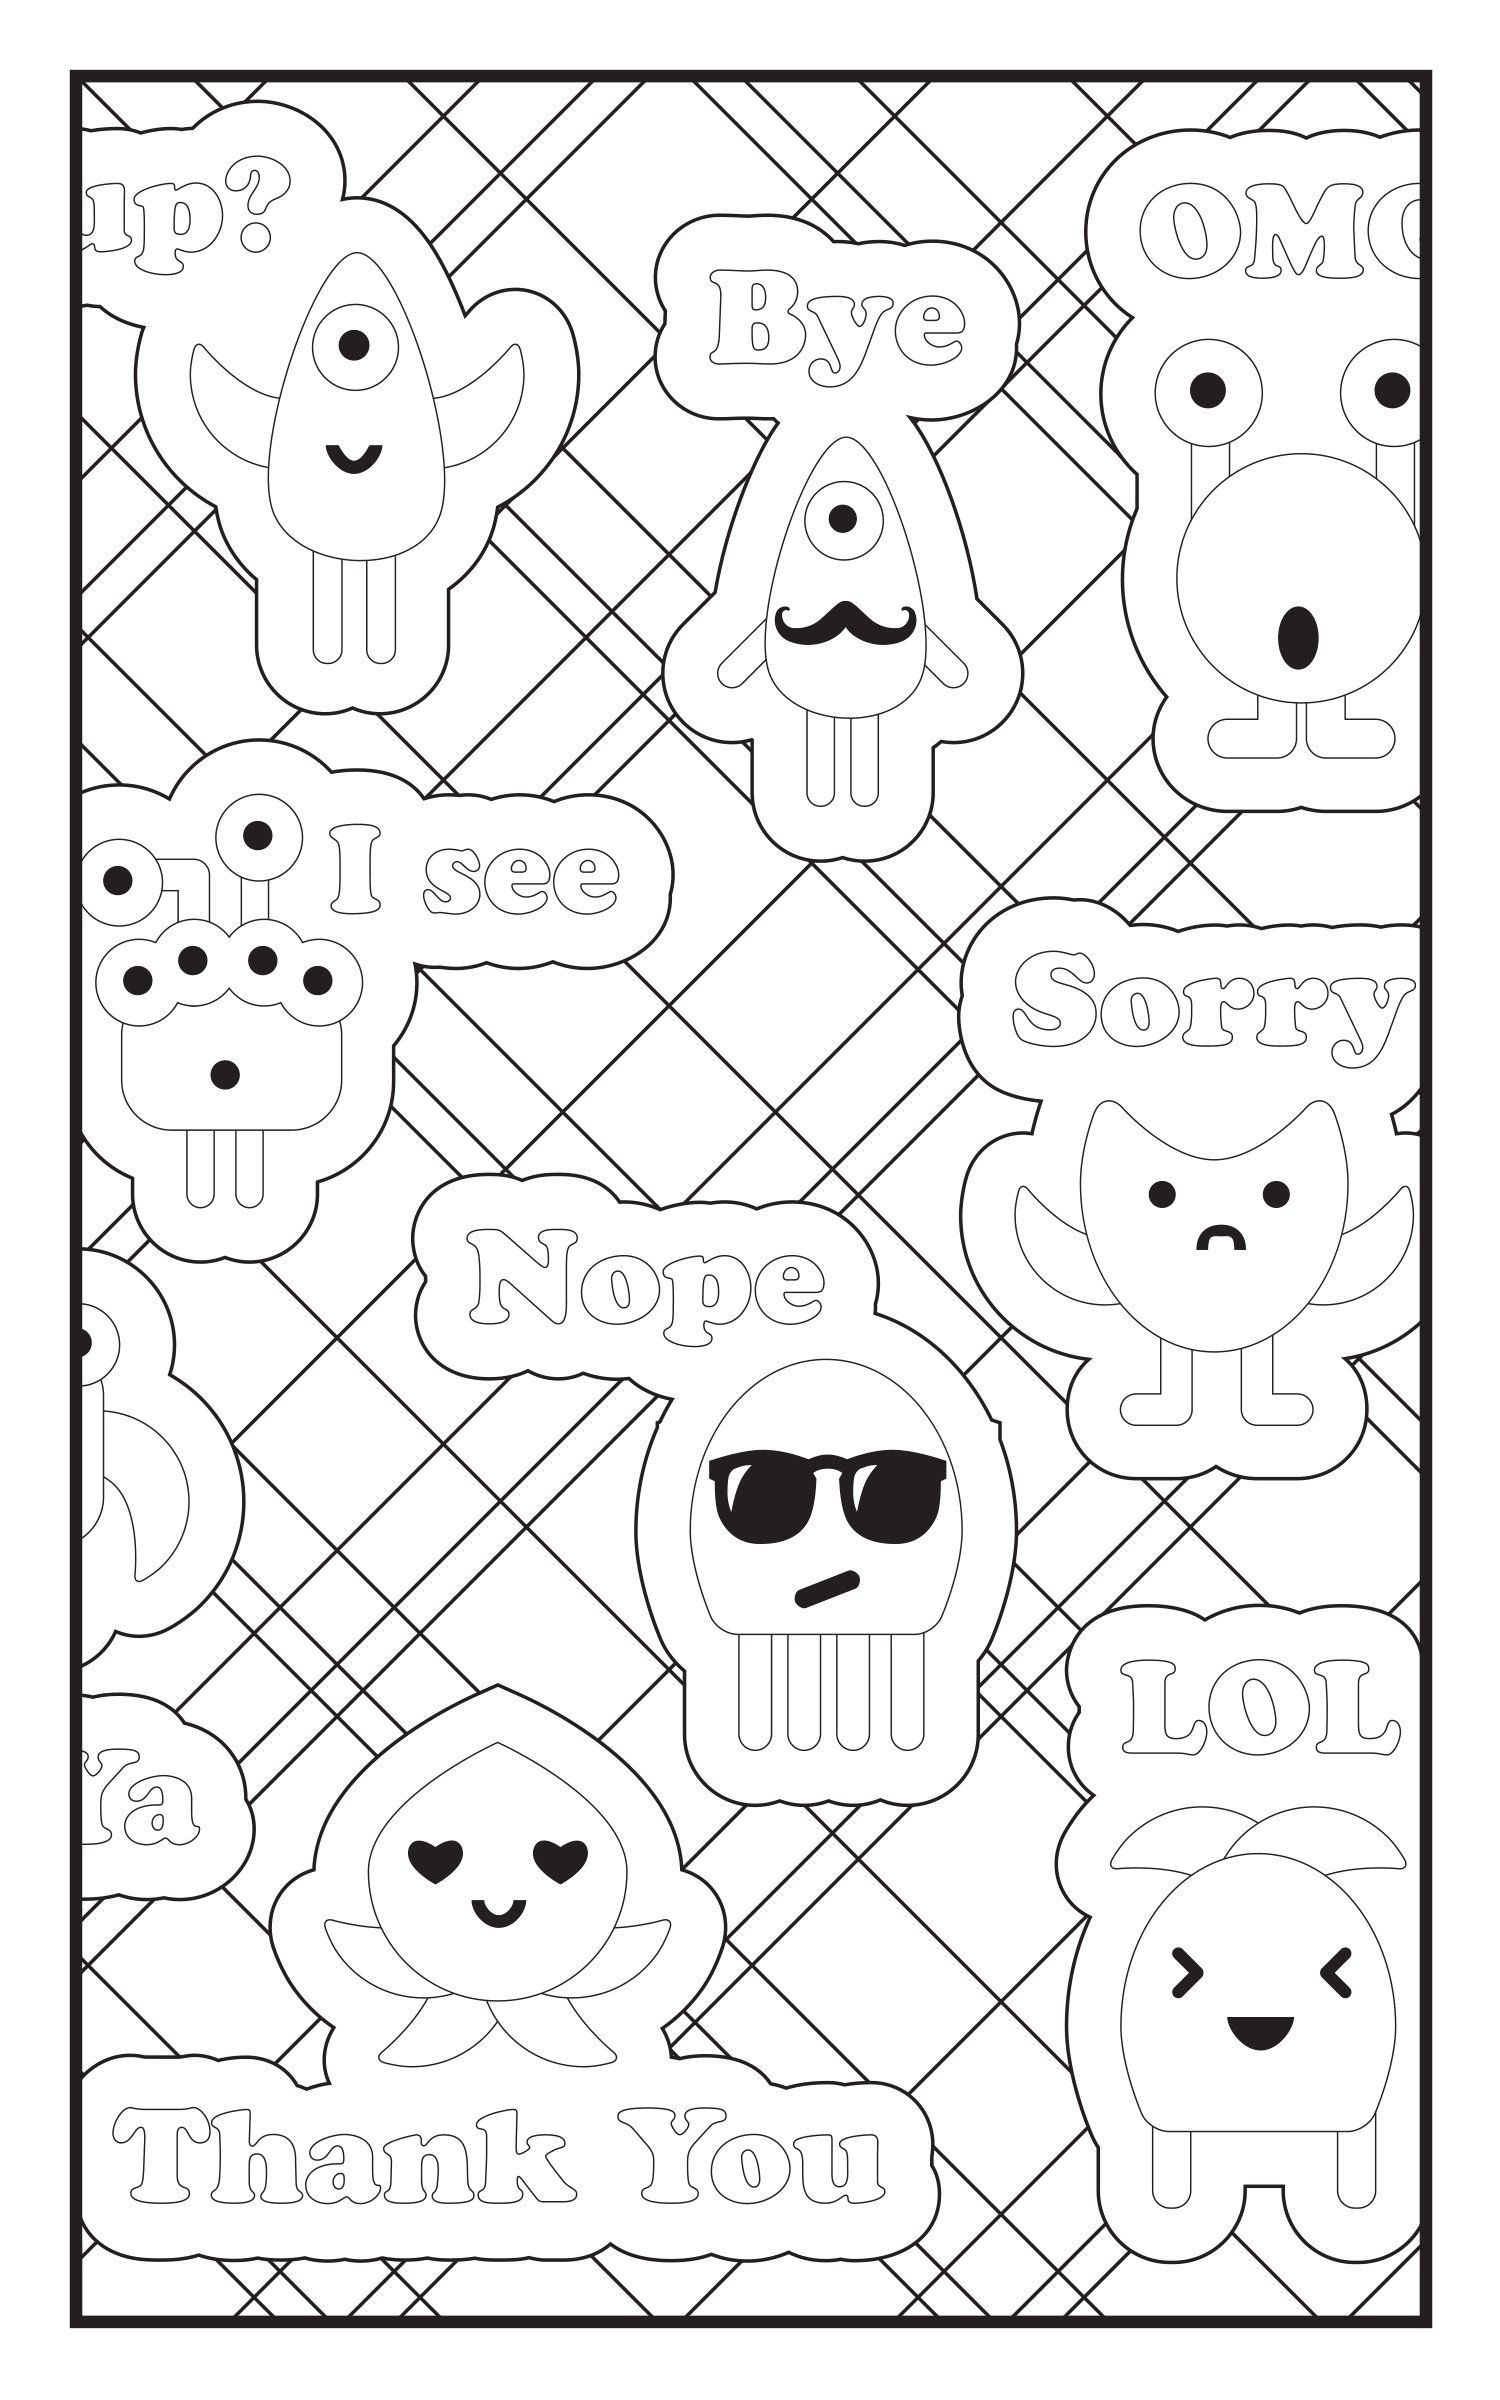 Amazon.com: Emoji Crazy Coloring Book 30 Cute Fun Pages: For Adults ...